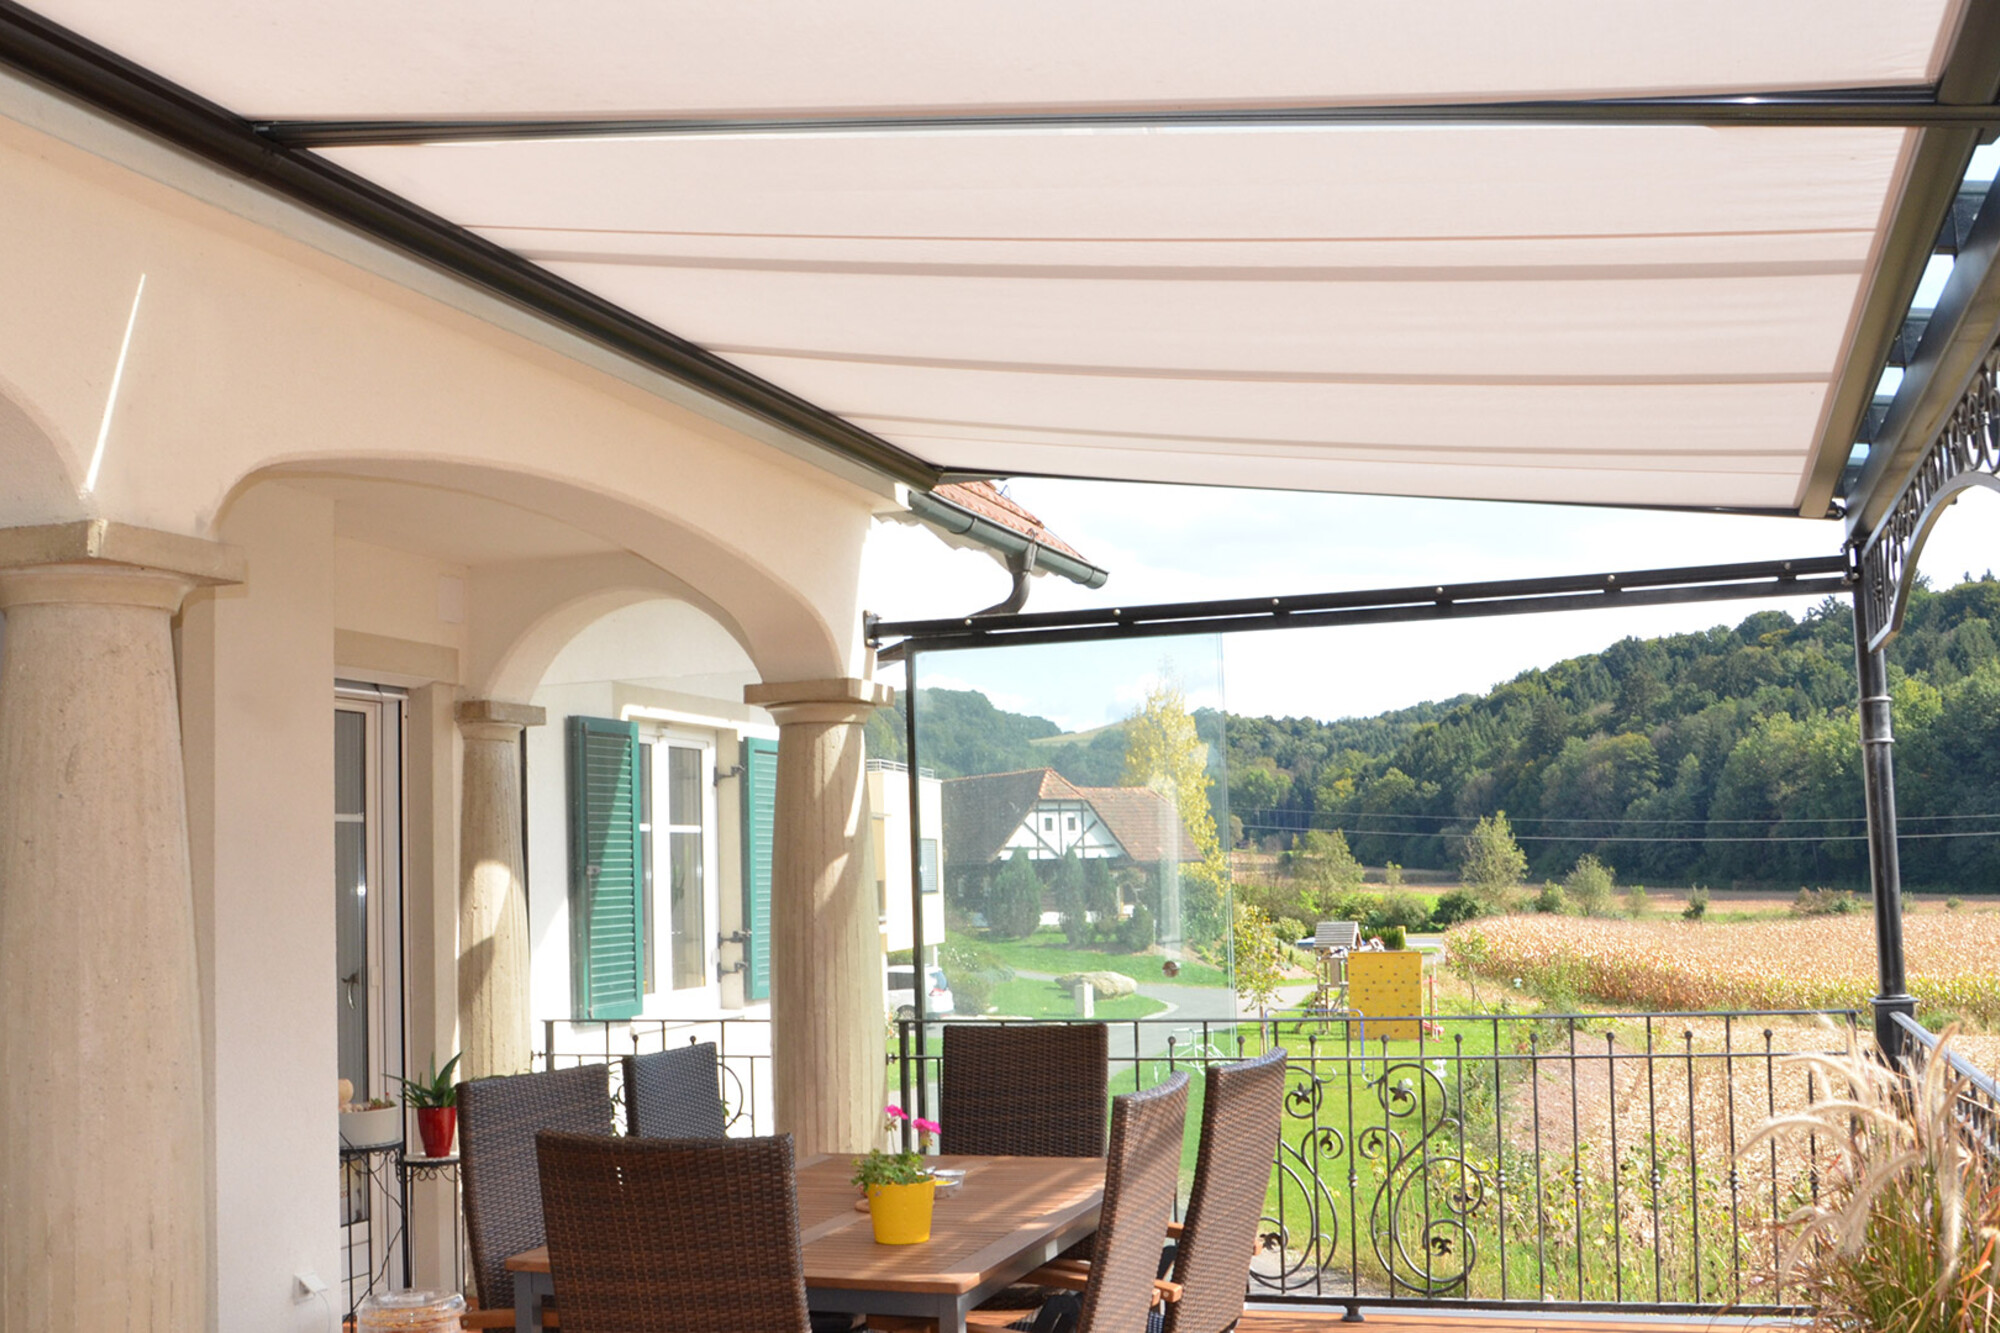 Product: Conservatory awning – XLIGHT